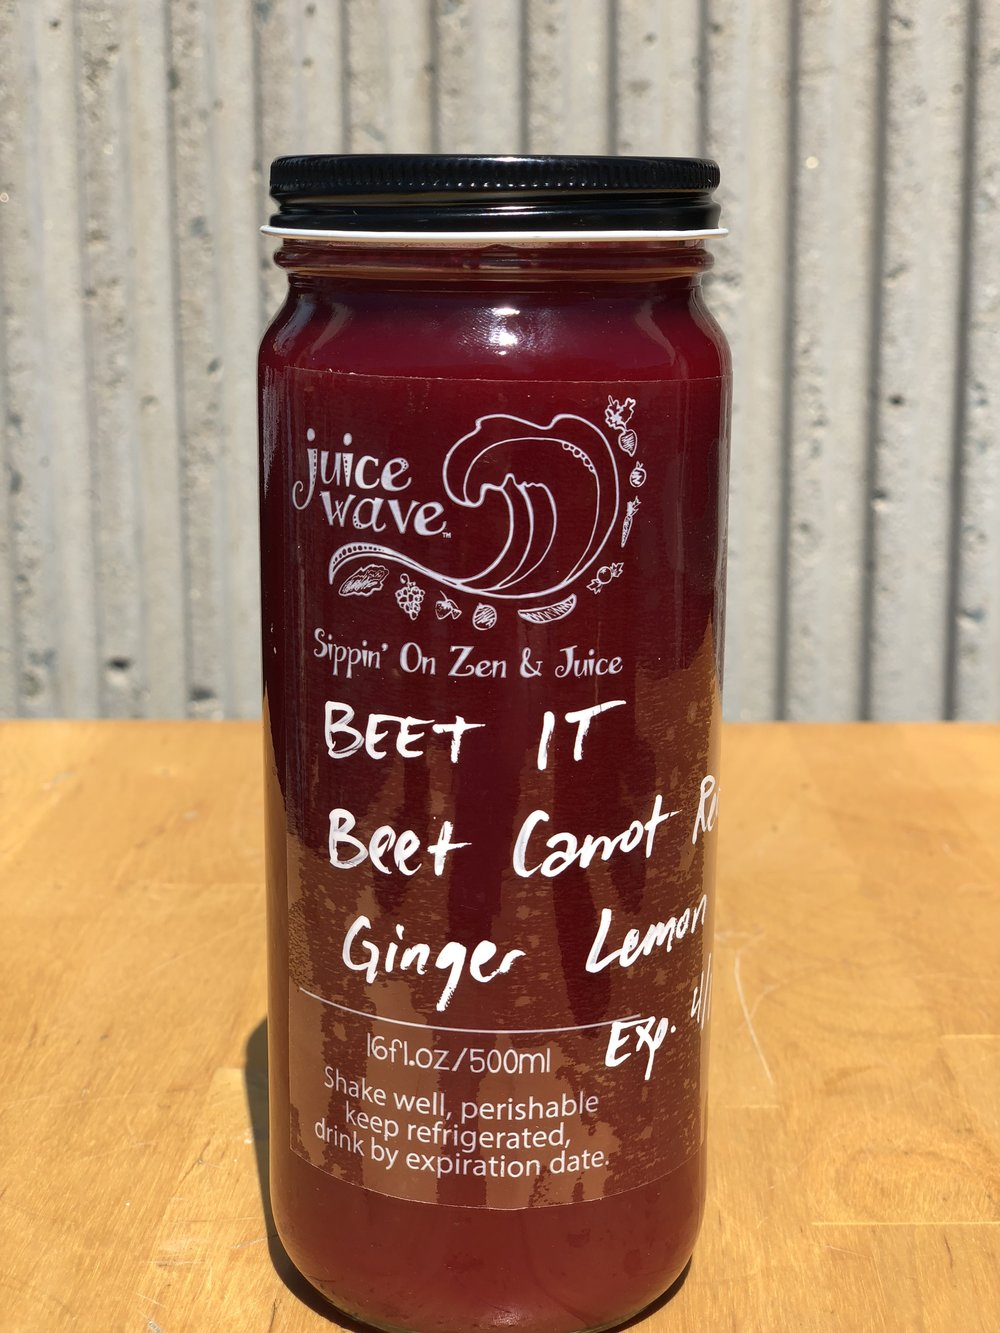 BEET IT: Beet, Carrot, Red Apple, Ginger, Lemon